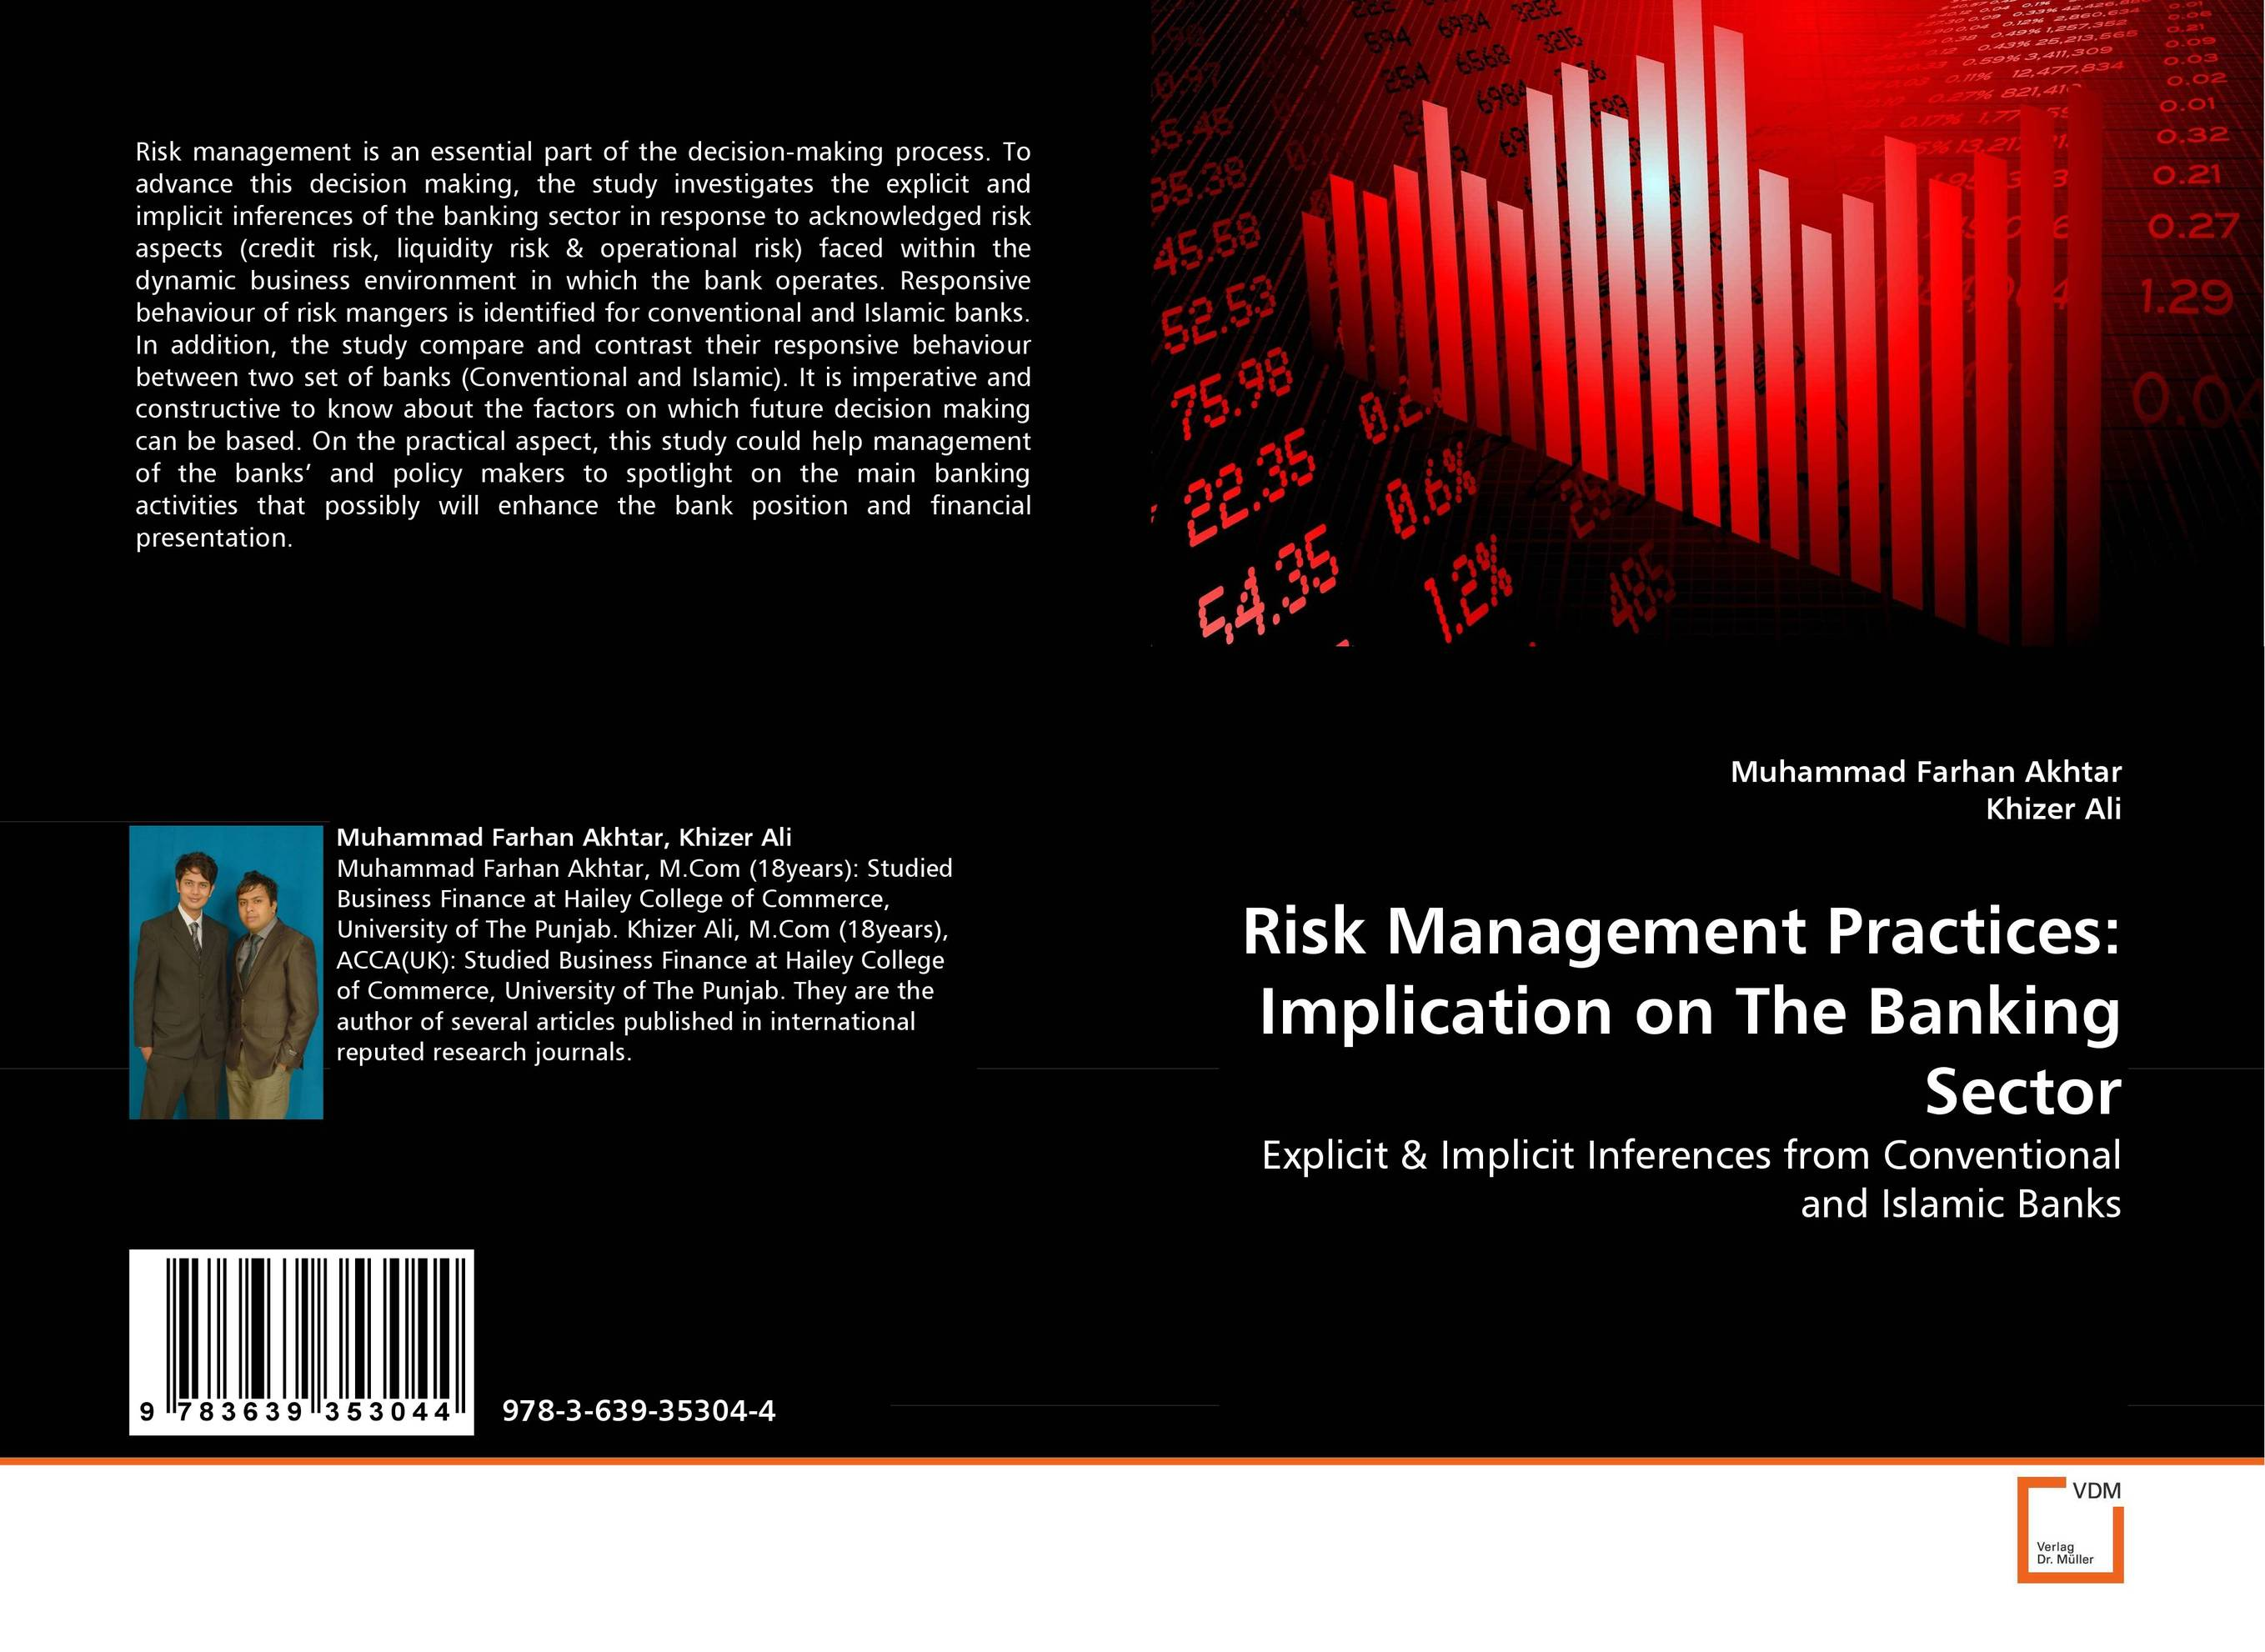 Risk Management Practices: Implication on The Banking Sector capital structure and risk dynamics among banks